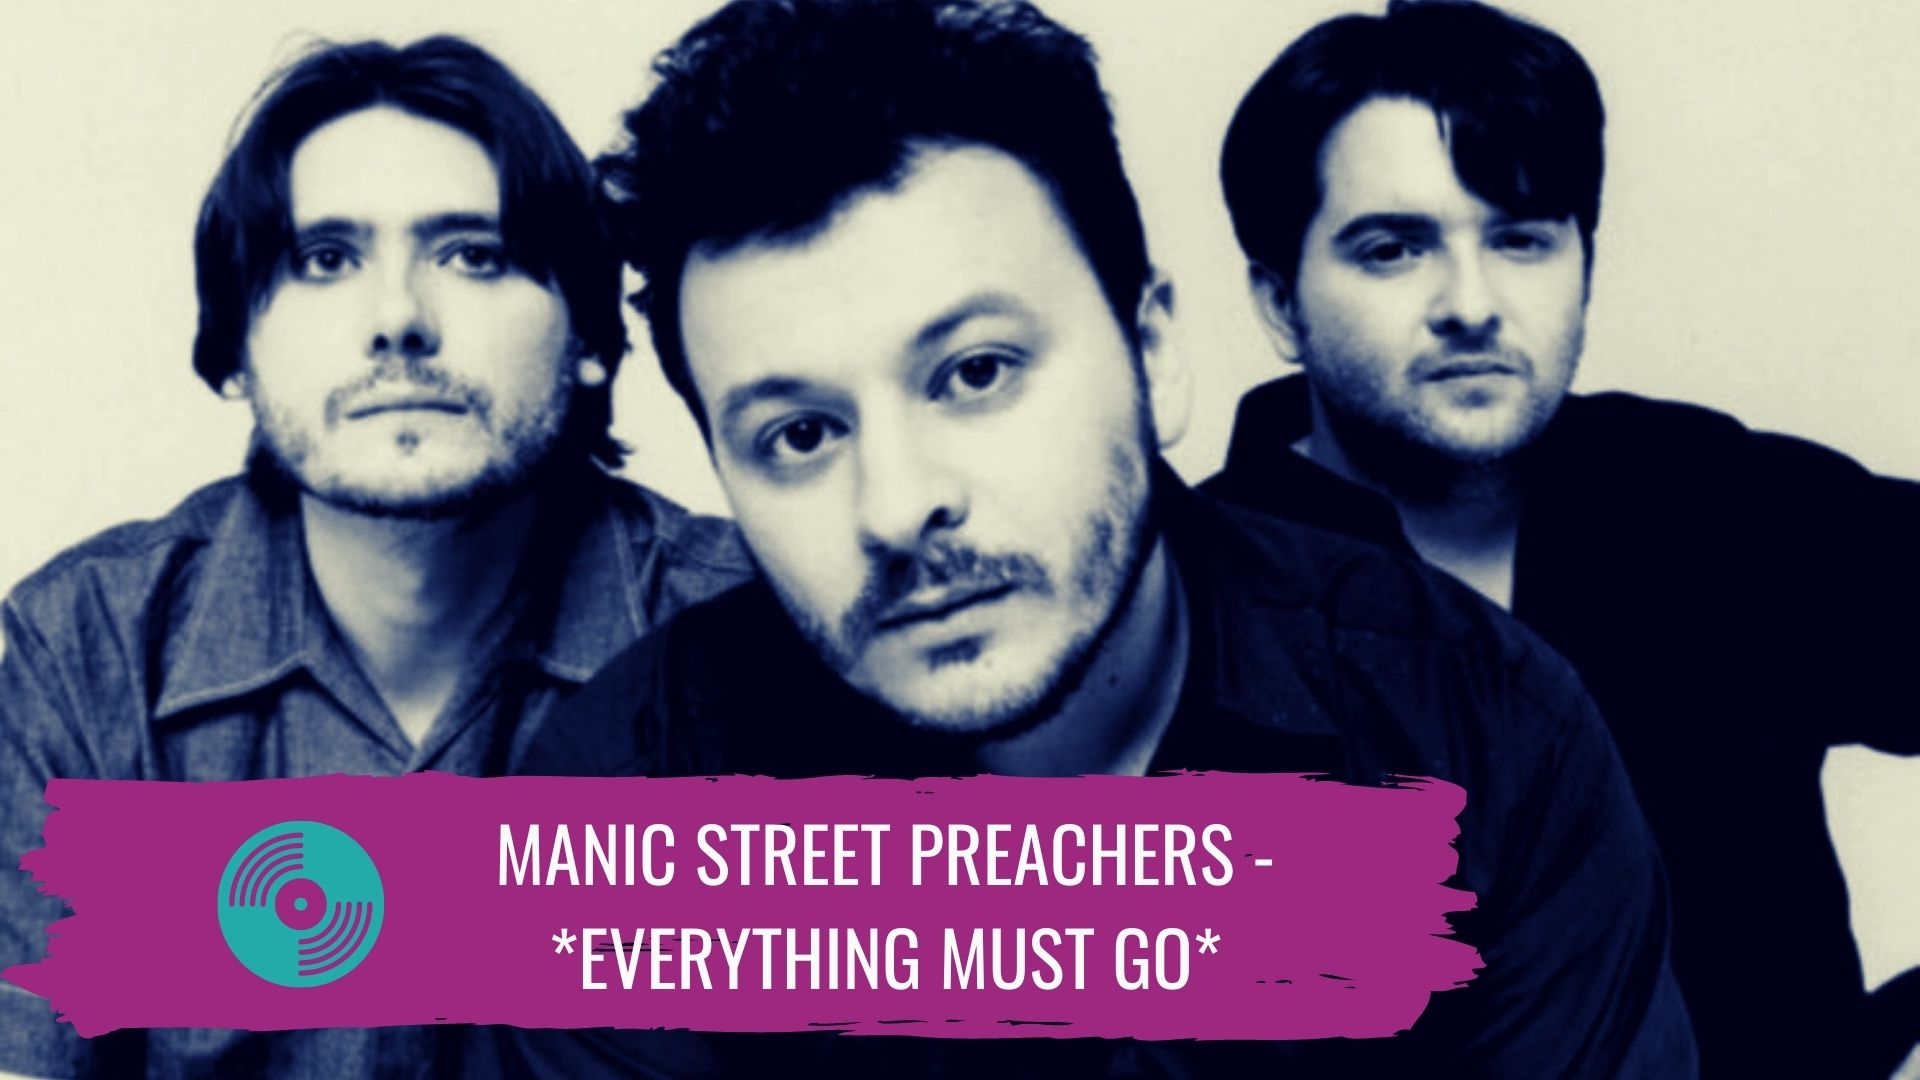 Manic Street Preachers – *Everything must go*